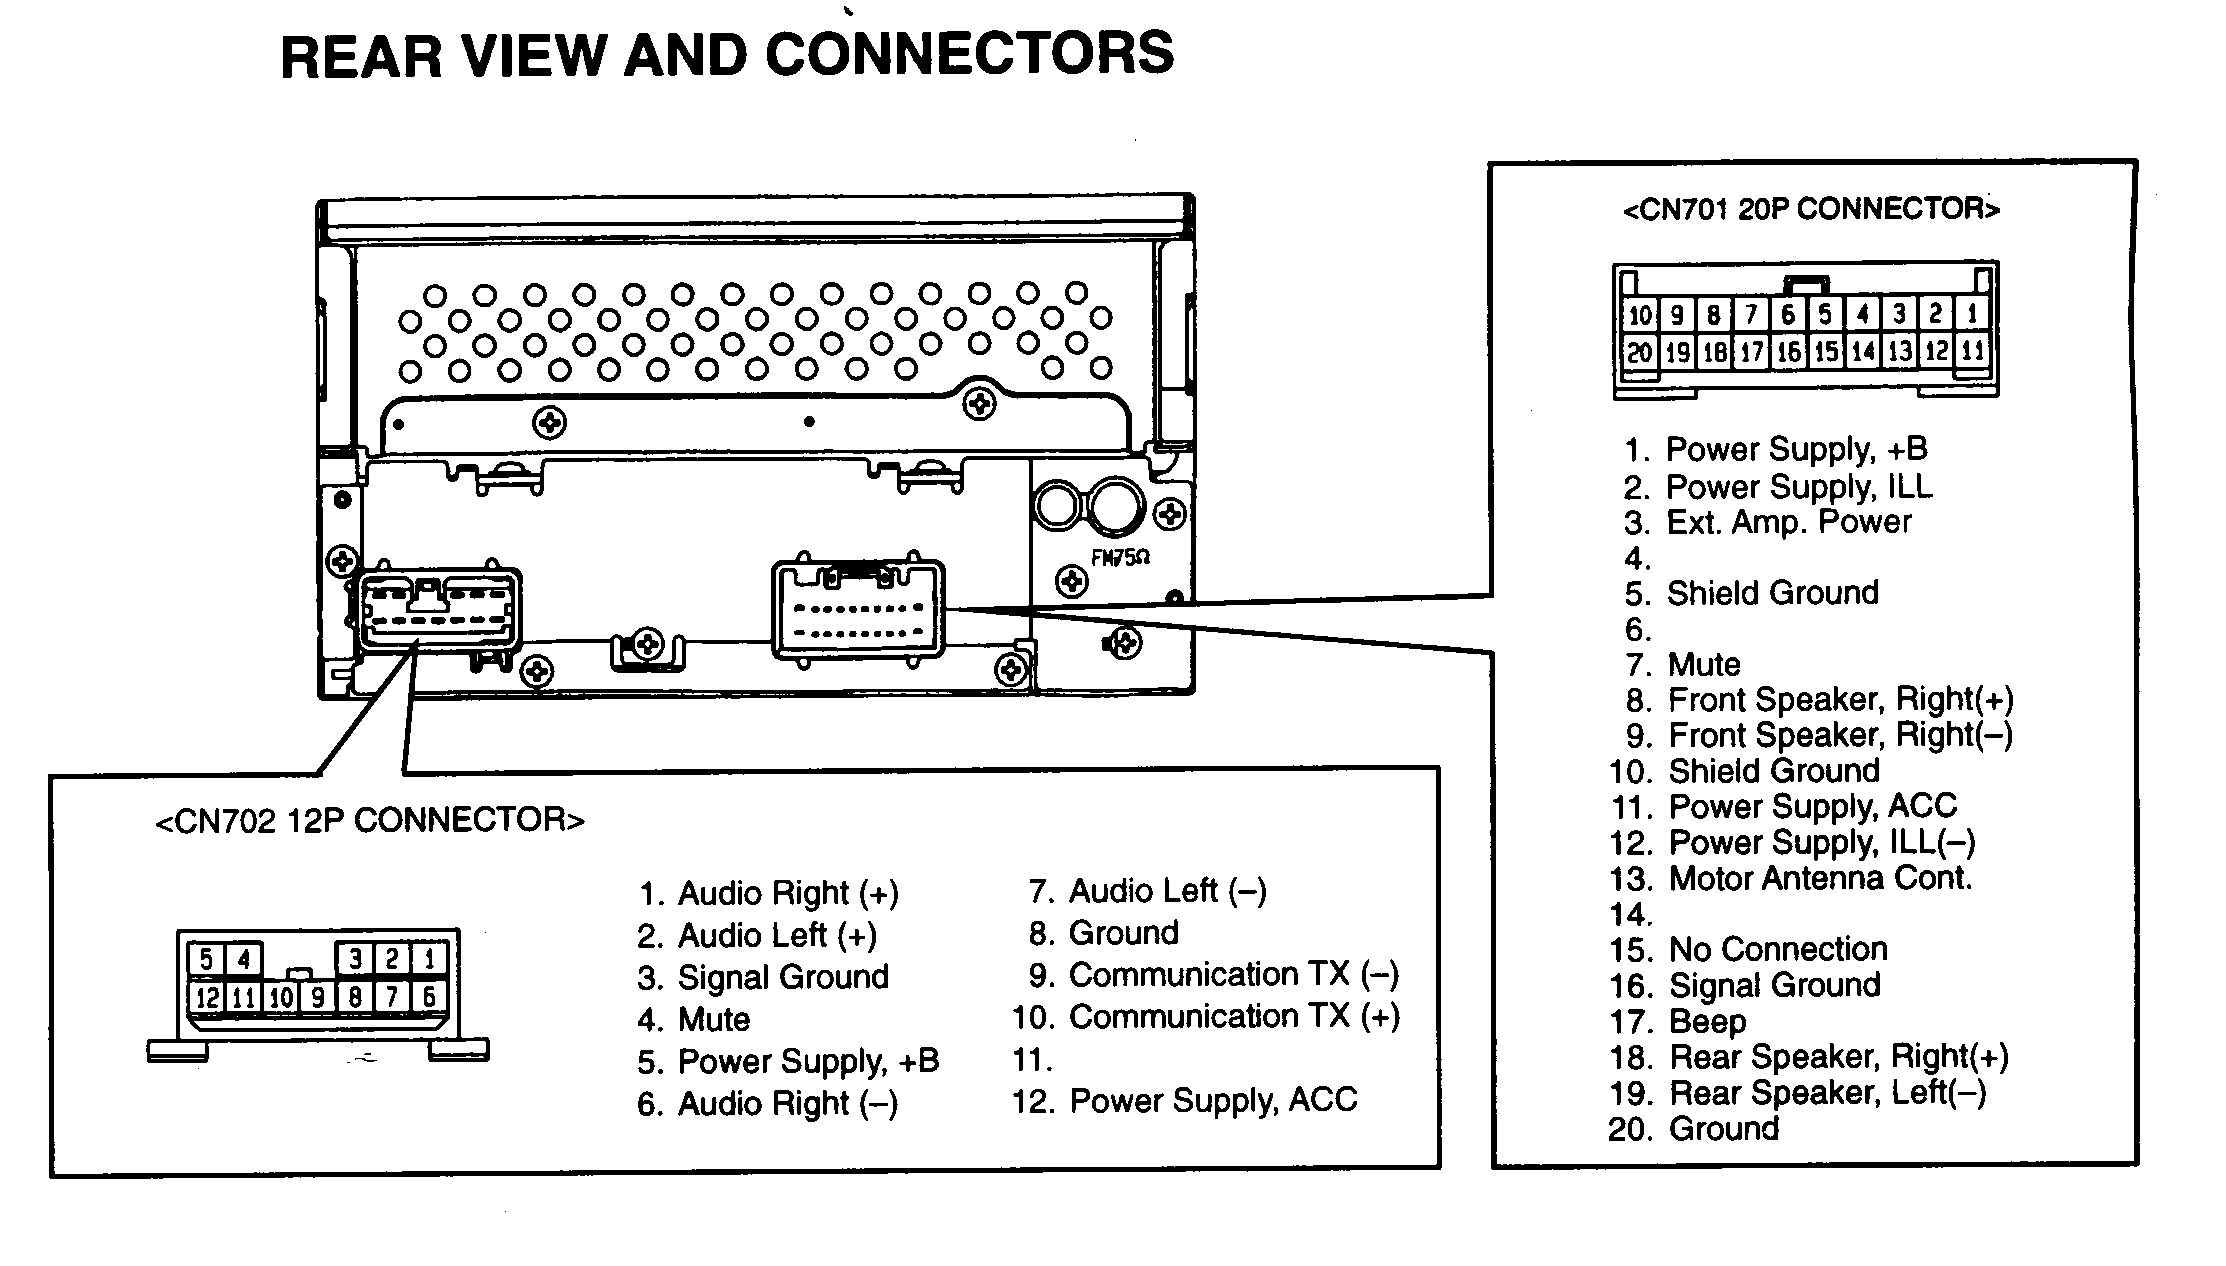 Car Speakers Wiring Diagram with Factory Car Stereo Wiring Diagrams Wiring Diagram Of Car Speakers Wiring Diagram